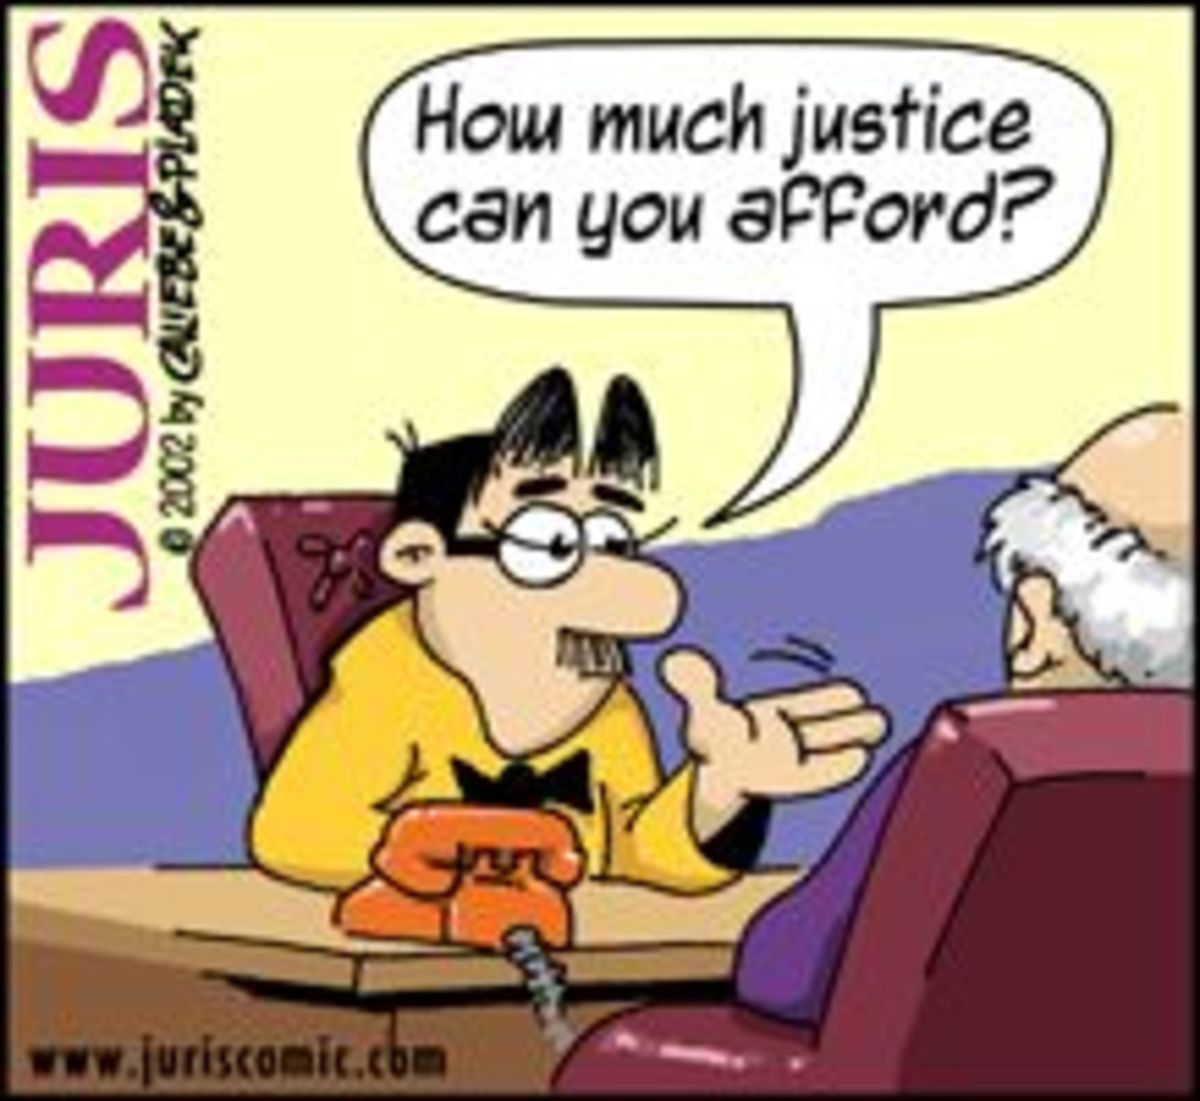 lawyers-jokes-a-collection-of-the-funniest-lawyer-and-attorney-jokes